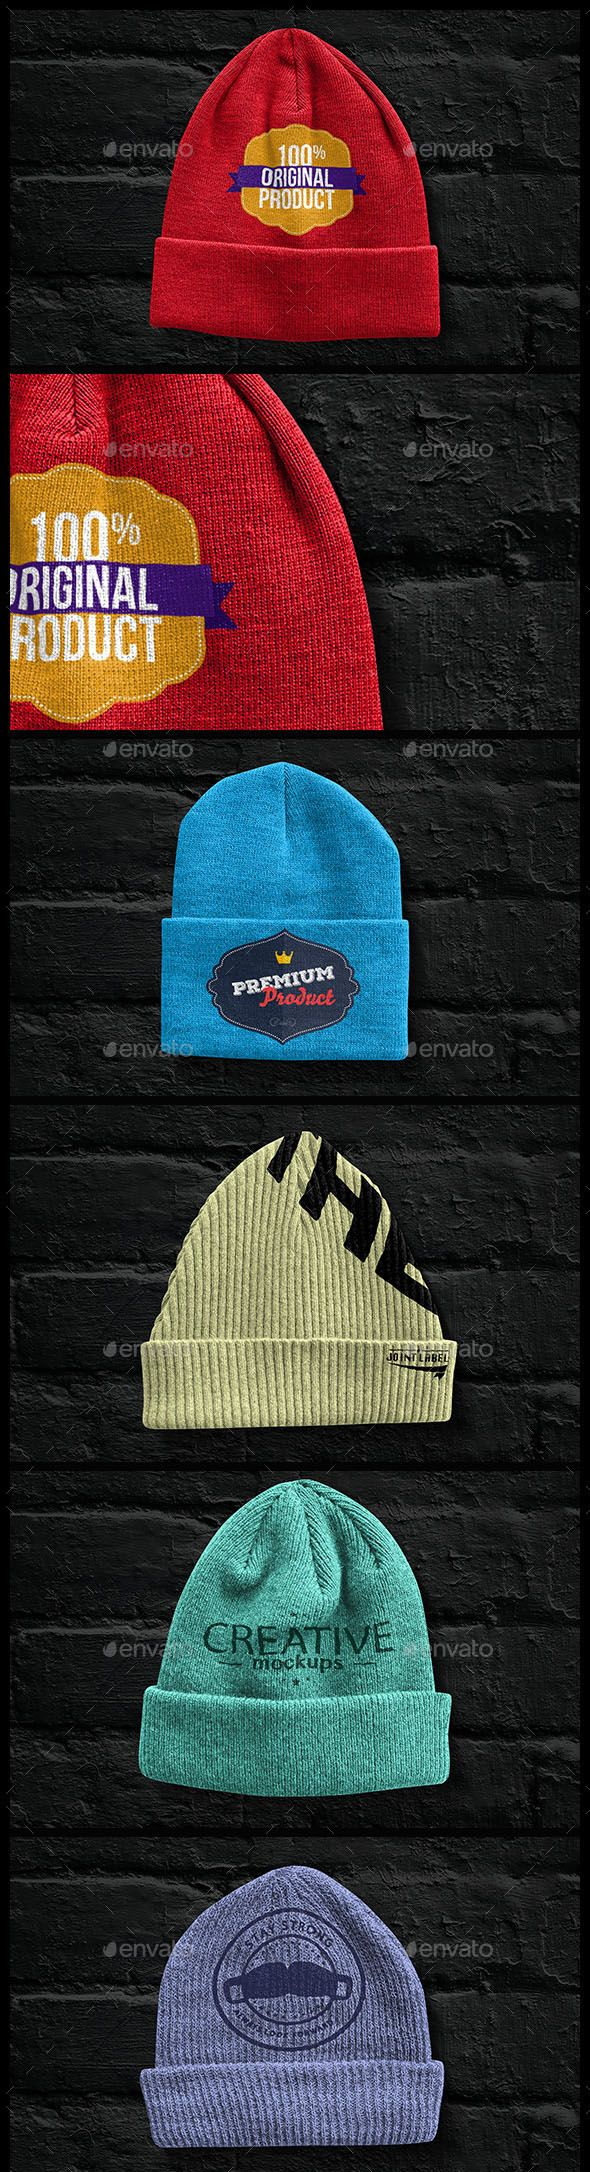 beanies-pack-mock-up High quality detailed Beanies Pack Mockup. FEATURES Includes 11 Beanie types Easy customization using Smart Objects Photo-Realistic look Unlimited colors Fully Layered PSD files Size: 2100×1400 pixels Resolution: 72 dpi WHAT'S INCLUDED: 11 PSD Files 5 displace maps 1 help file